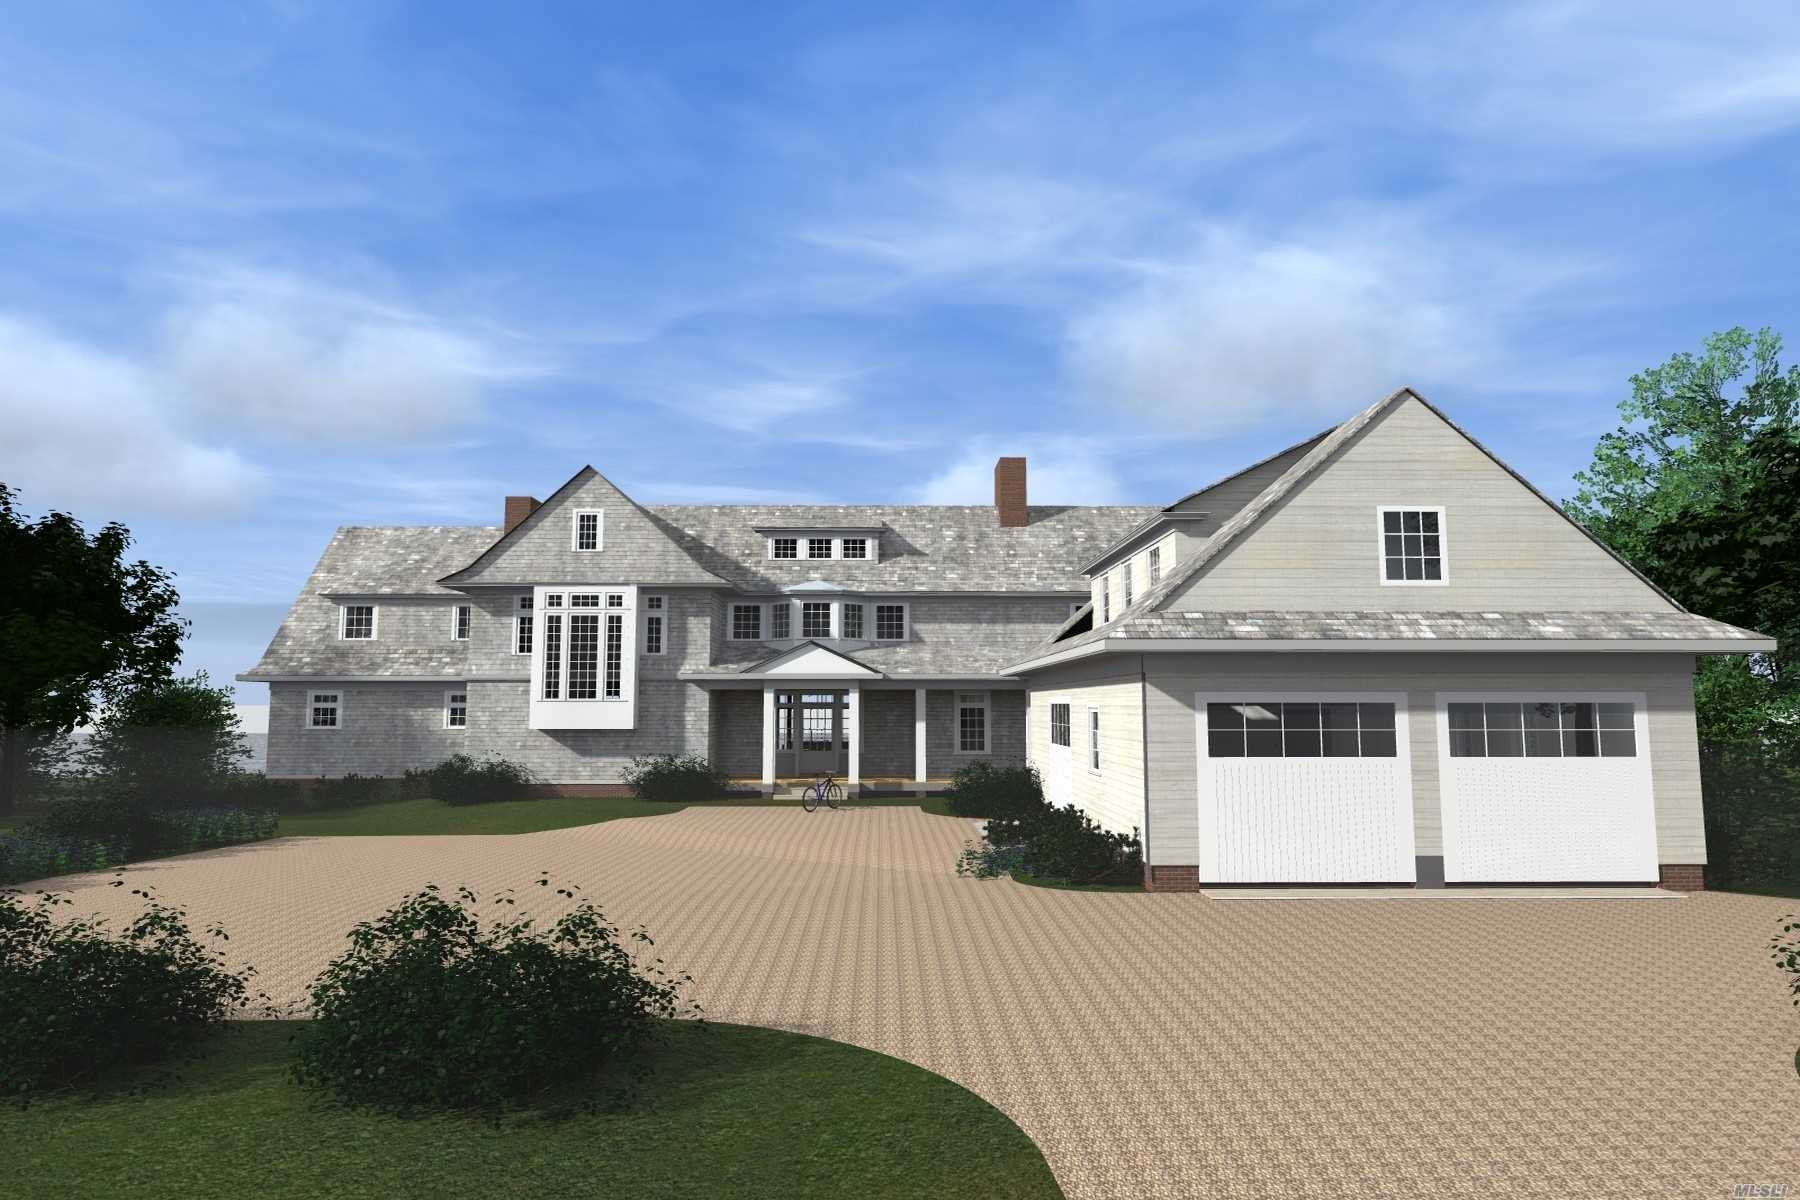 Quogue Village waterfront 192'of bulkhead canal frontage with boat slip. Complete with ocean views on cul de sac, this 1.3 acre lot already has Board of Health & DEC approval. Customize your home or view existing plans from the owners own renderings. Close to ocean beaches, golf, tennis and village. This location is a must see.